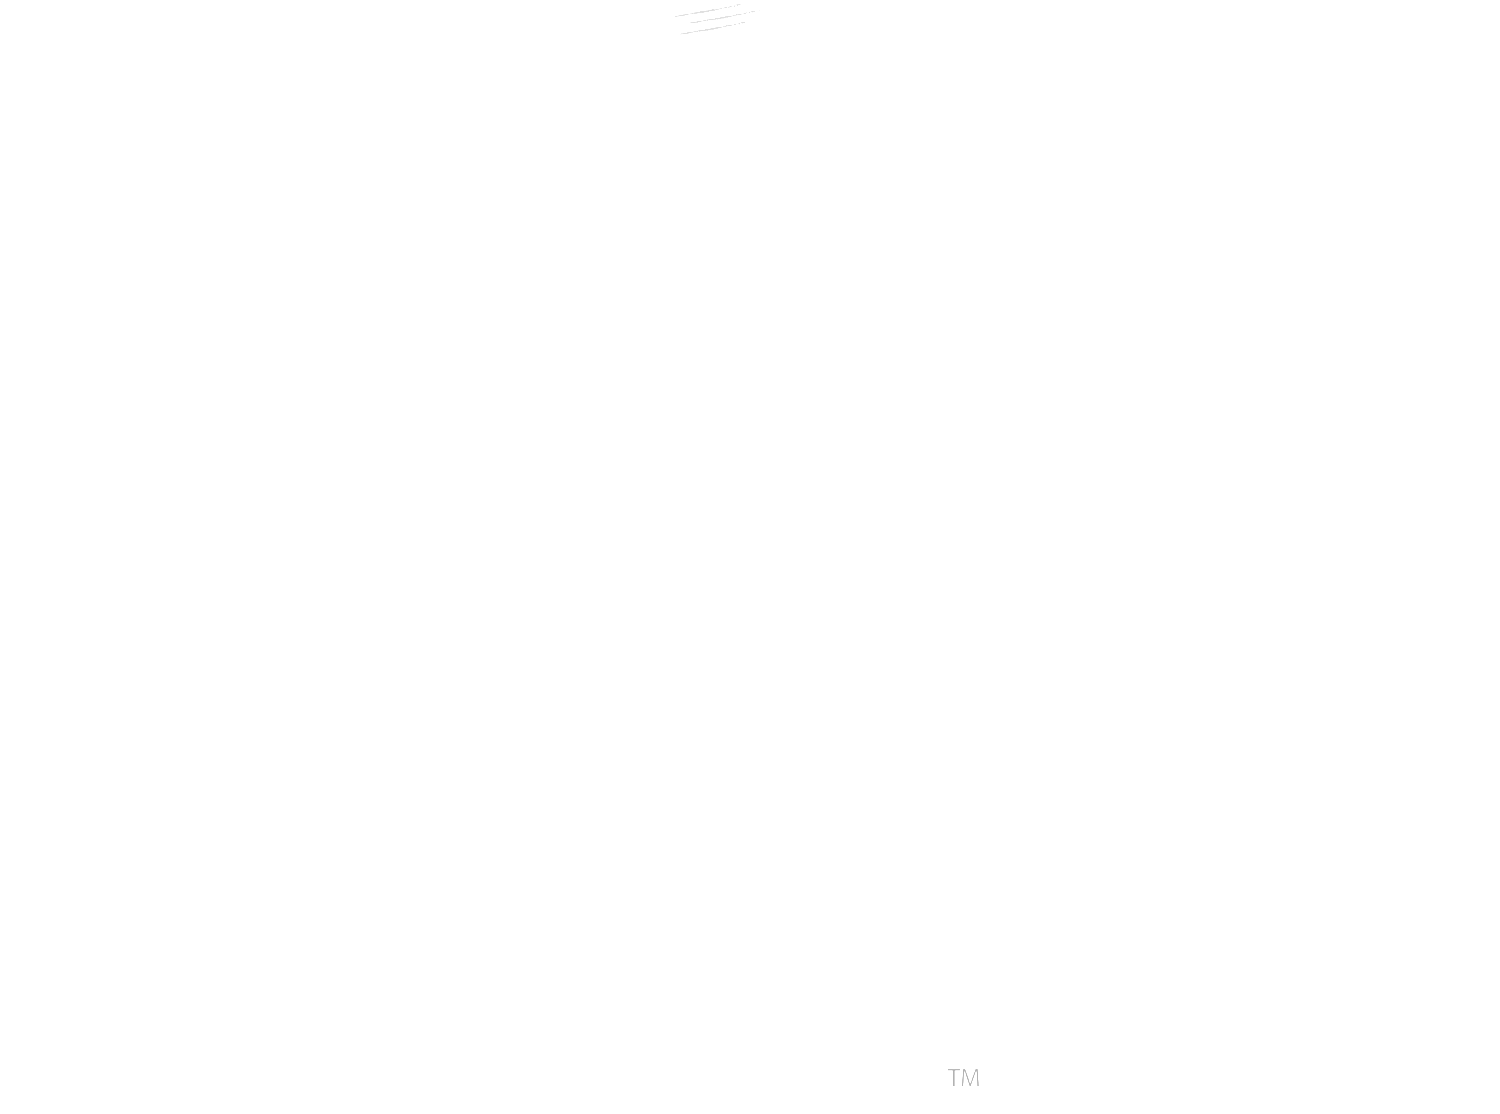 Troodon Design Co.